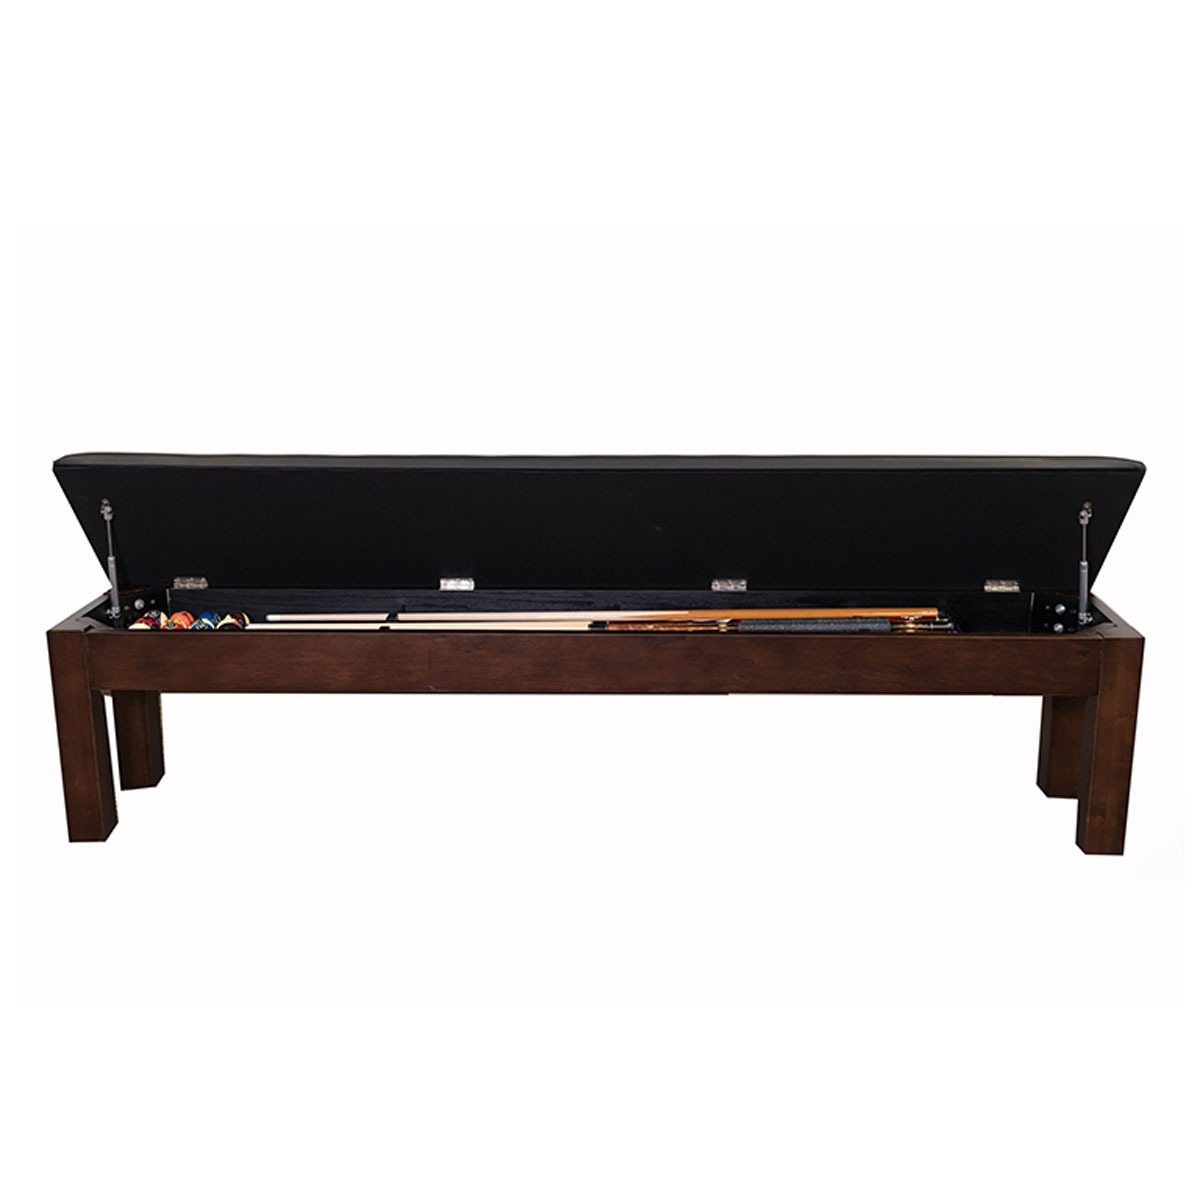 Hamilton Bench Openq - Lincoln Pool Table